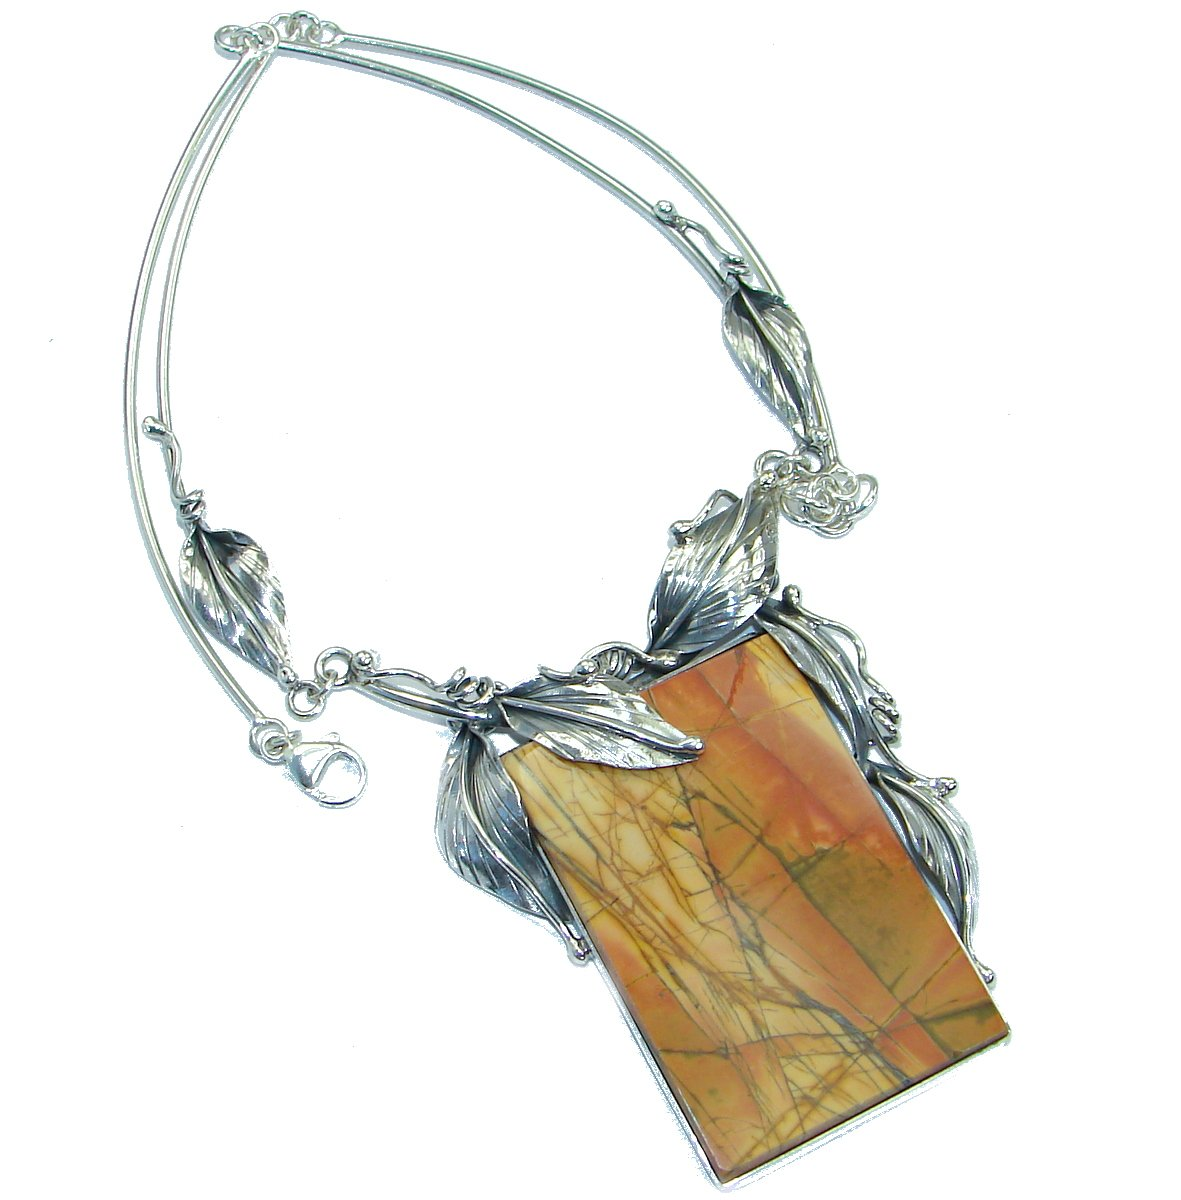 morrisonite Women 925 Sterling Silver Necklace - FREE GIFT BOX